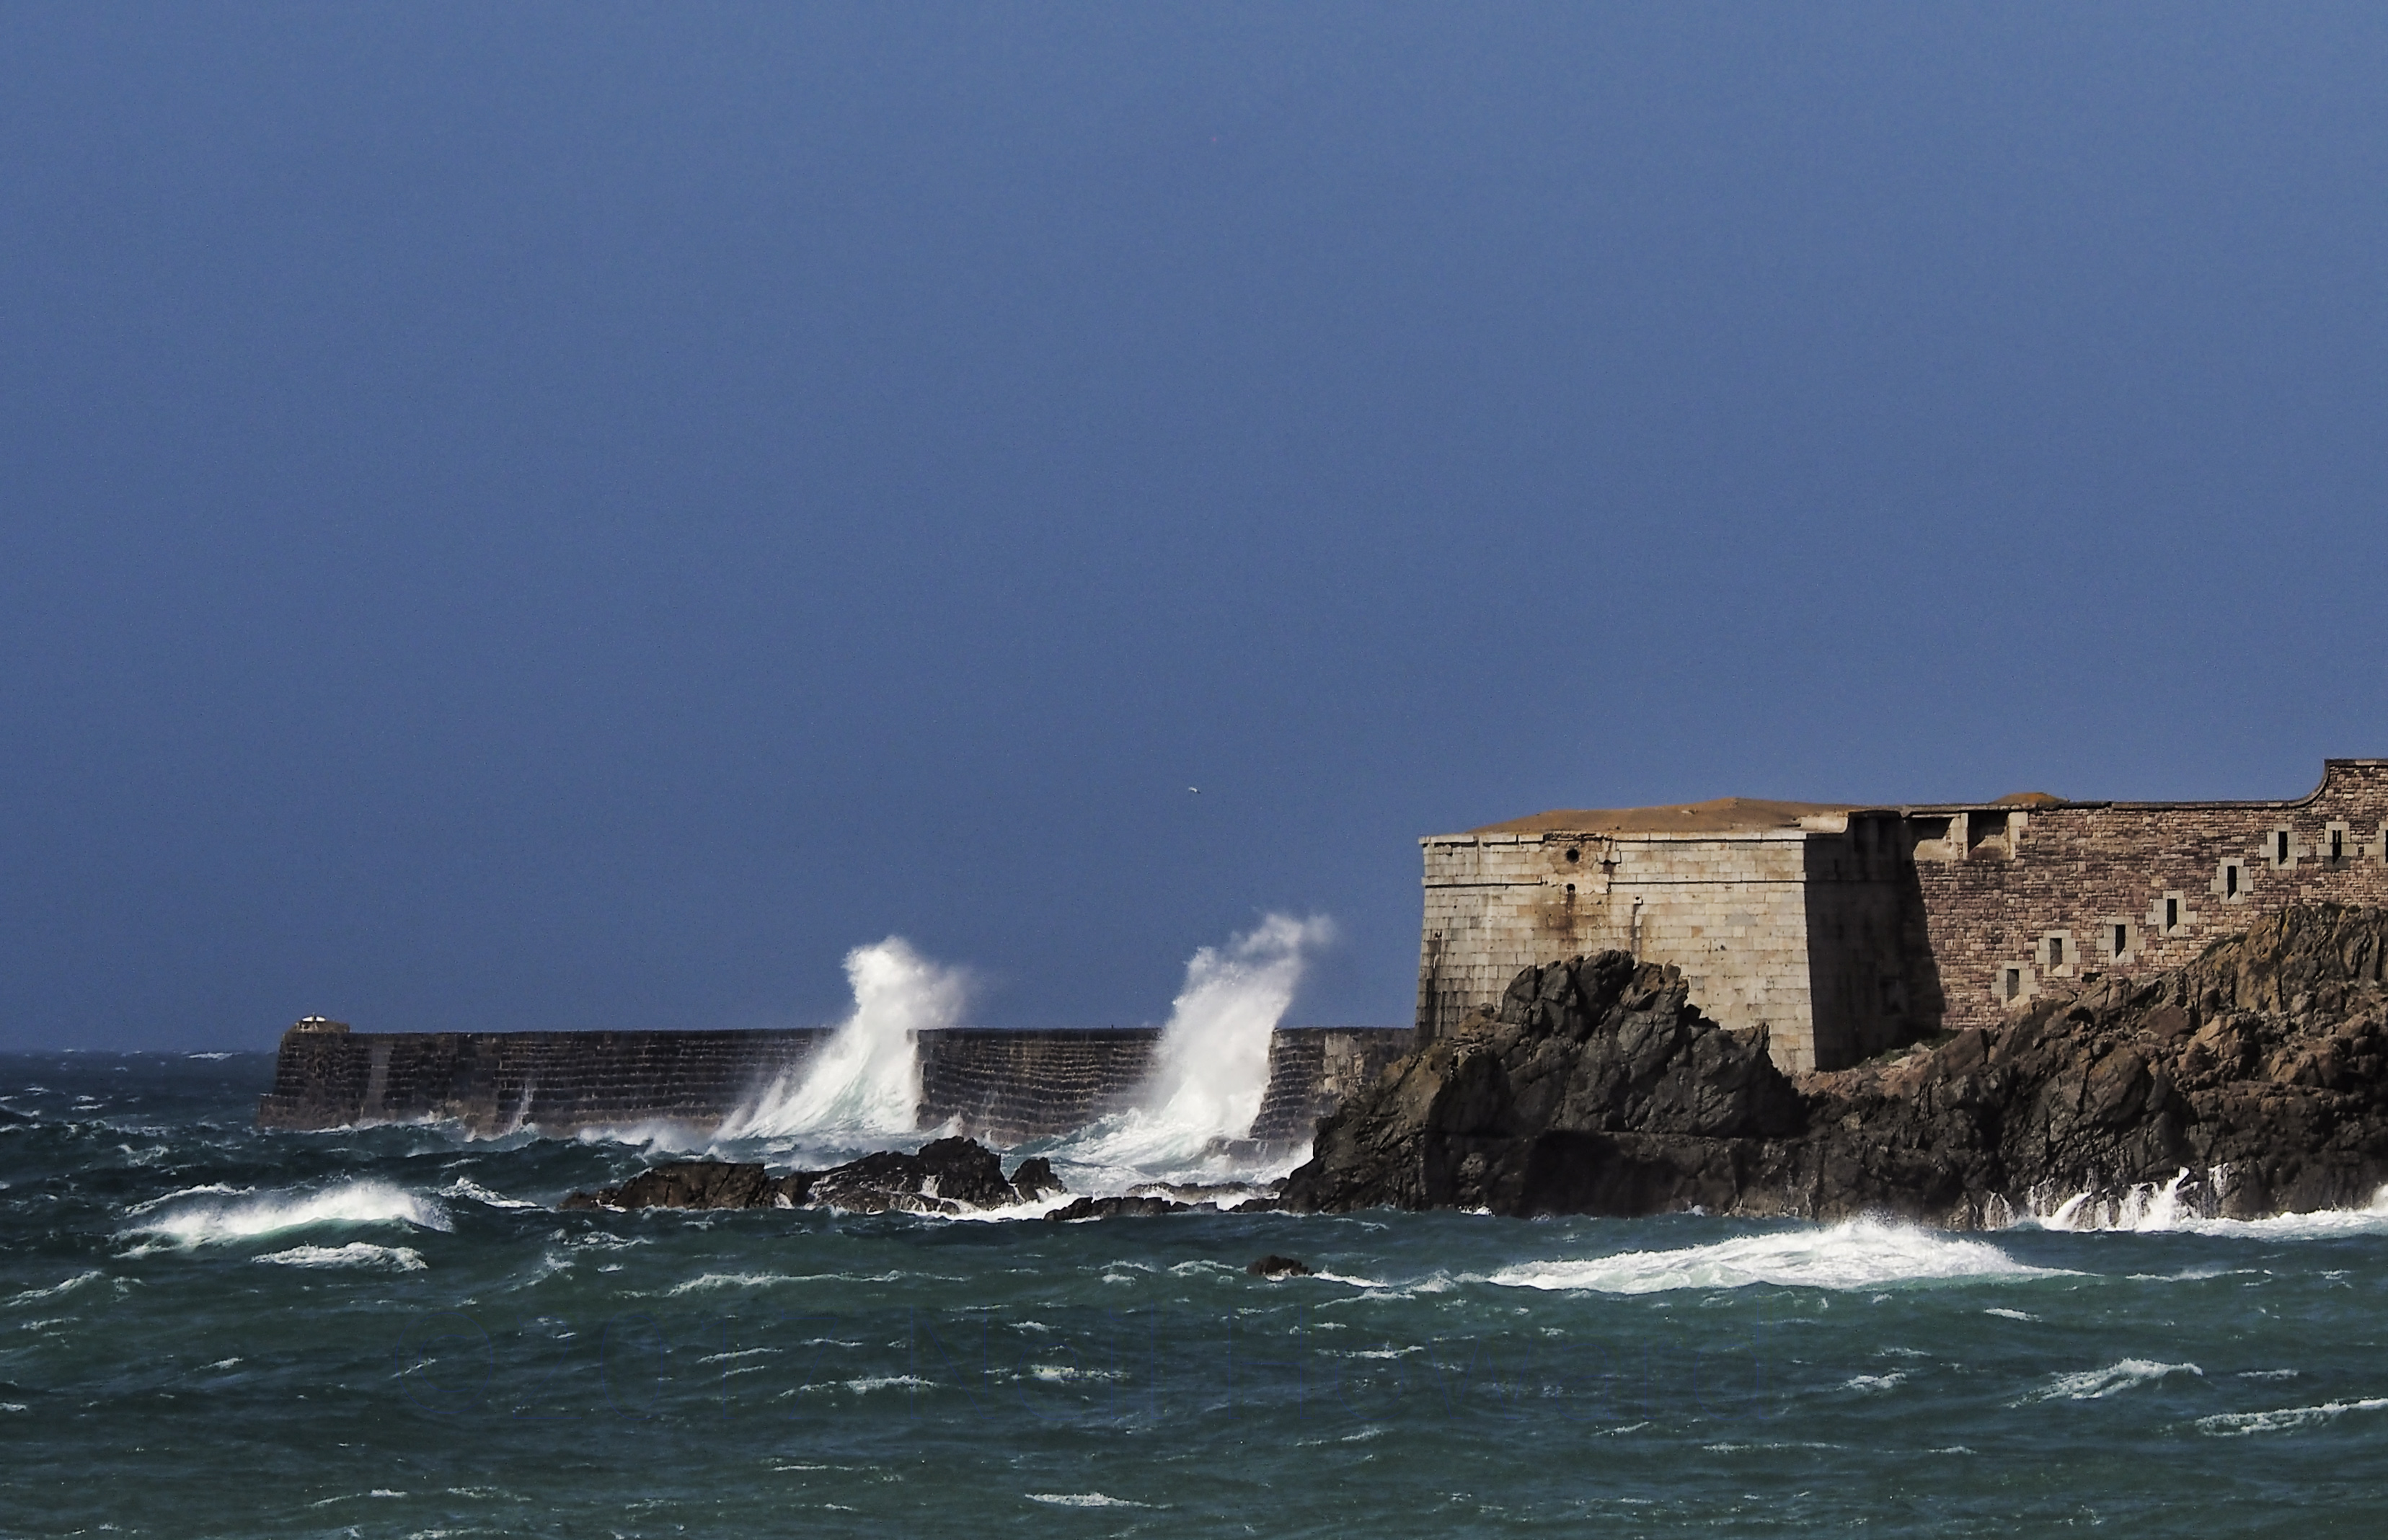 Neil howard 06.06.17 waves hitting the breakwater on alderney